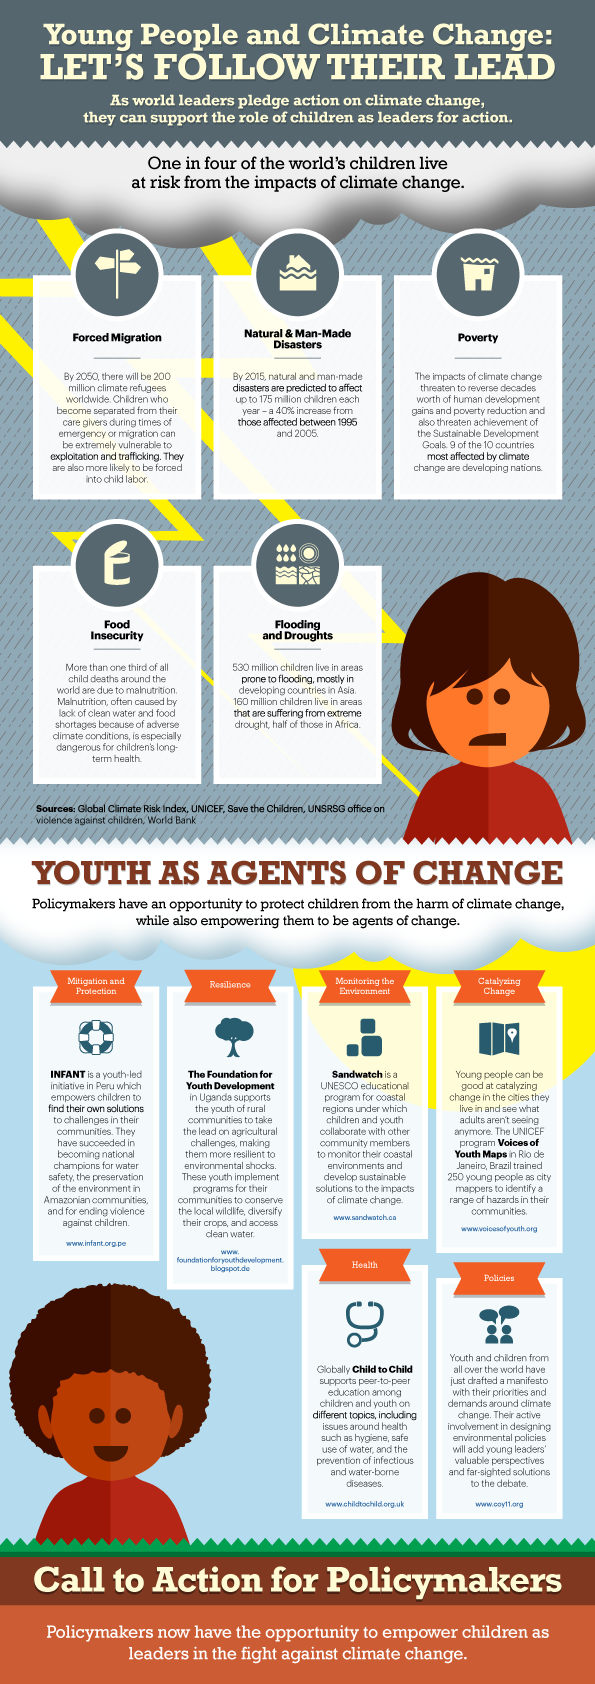 CLIENT:  Unbranded  PROJECT: Youth as agents of change - the environment